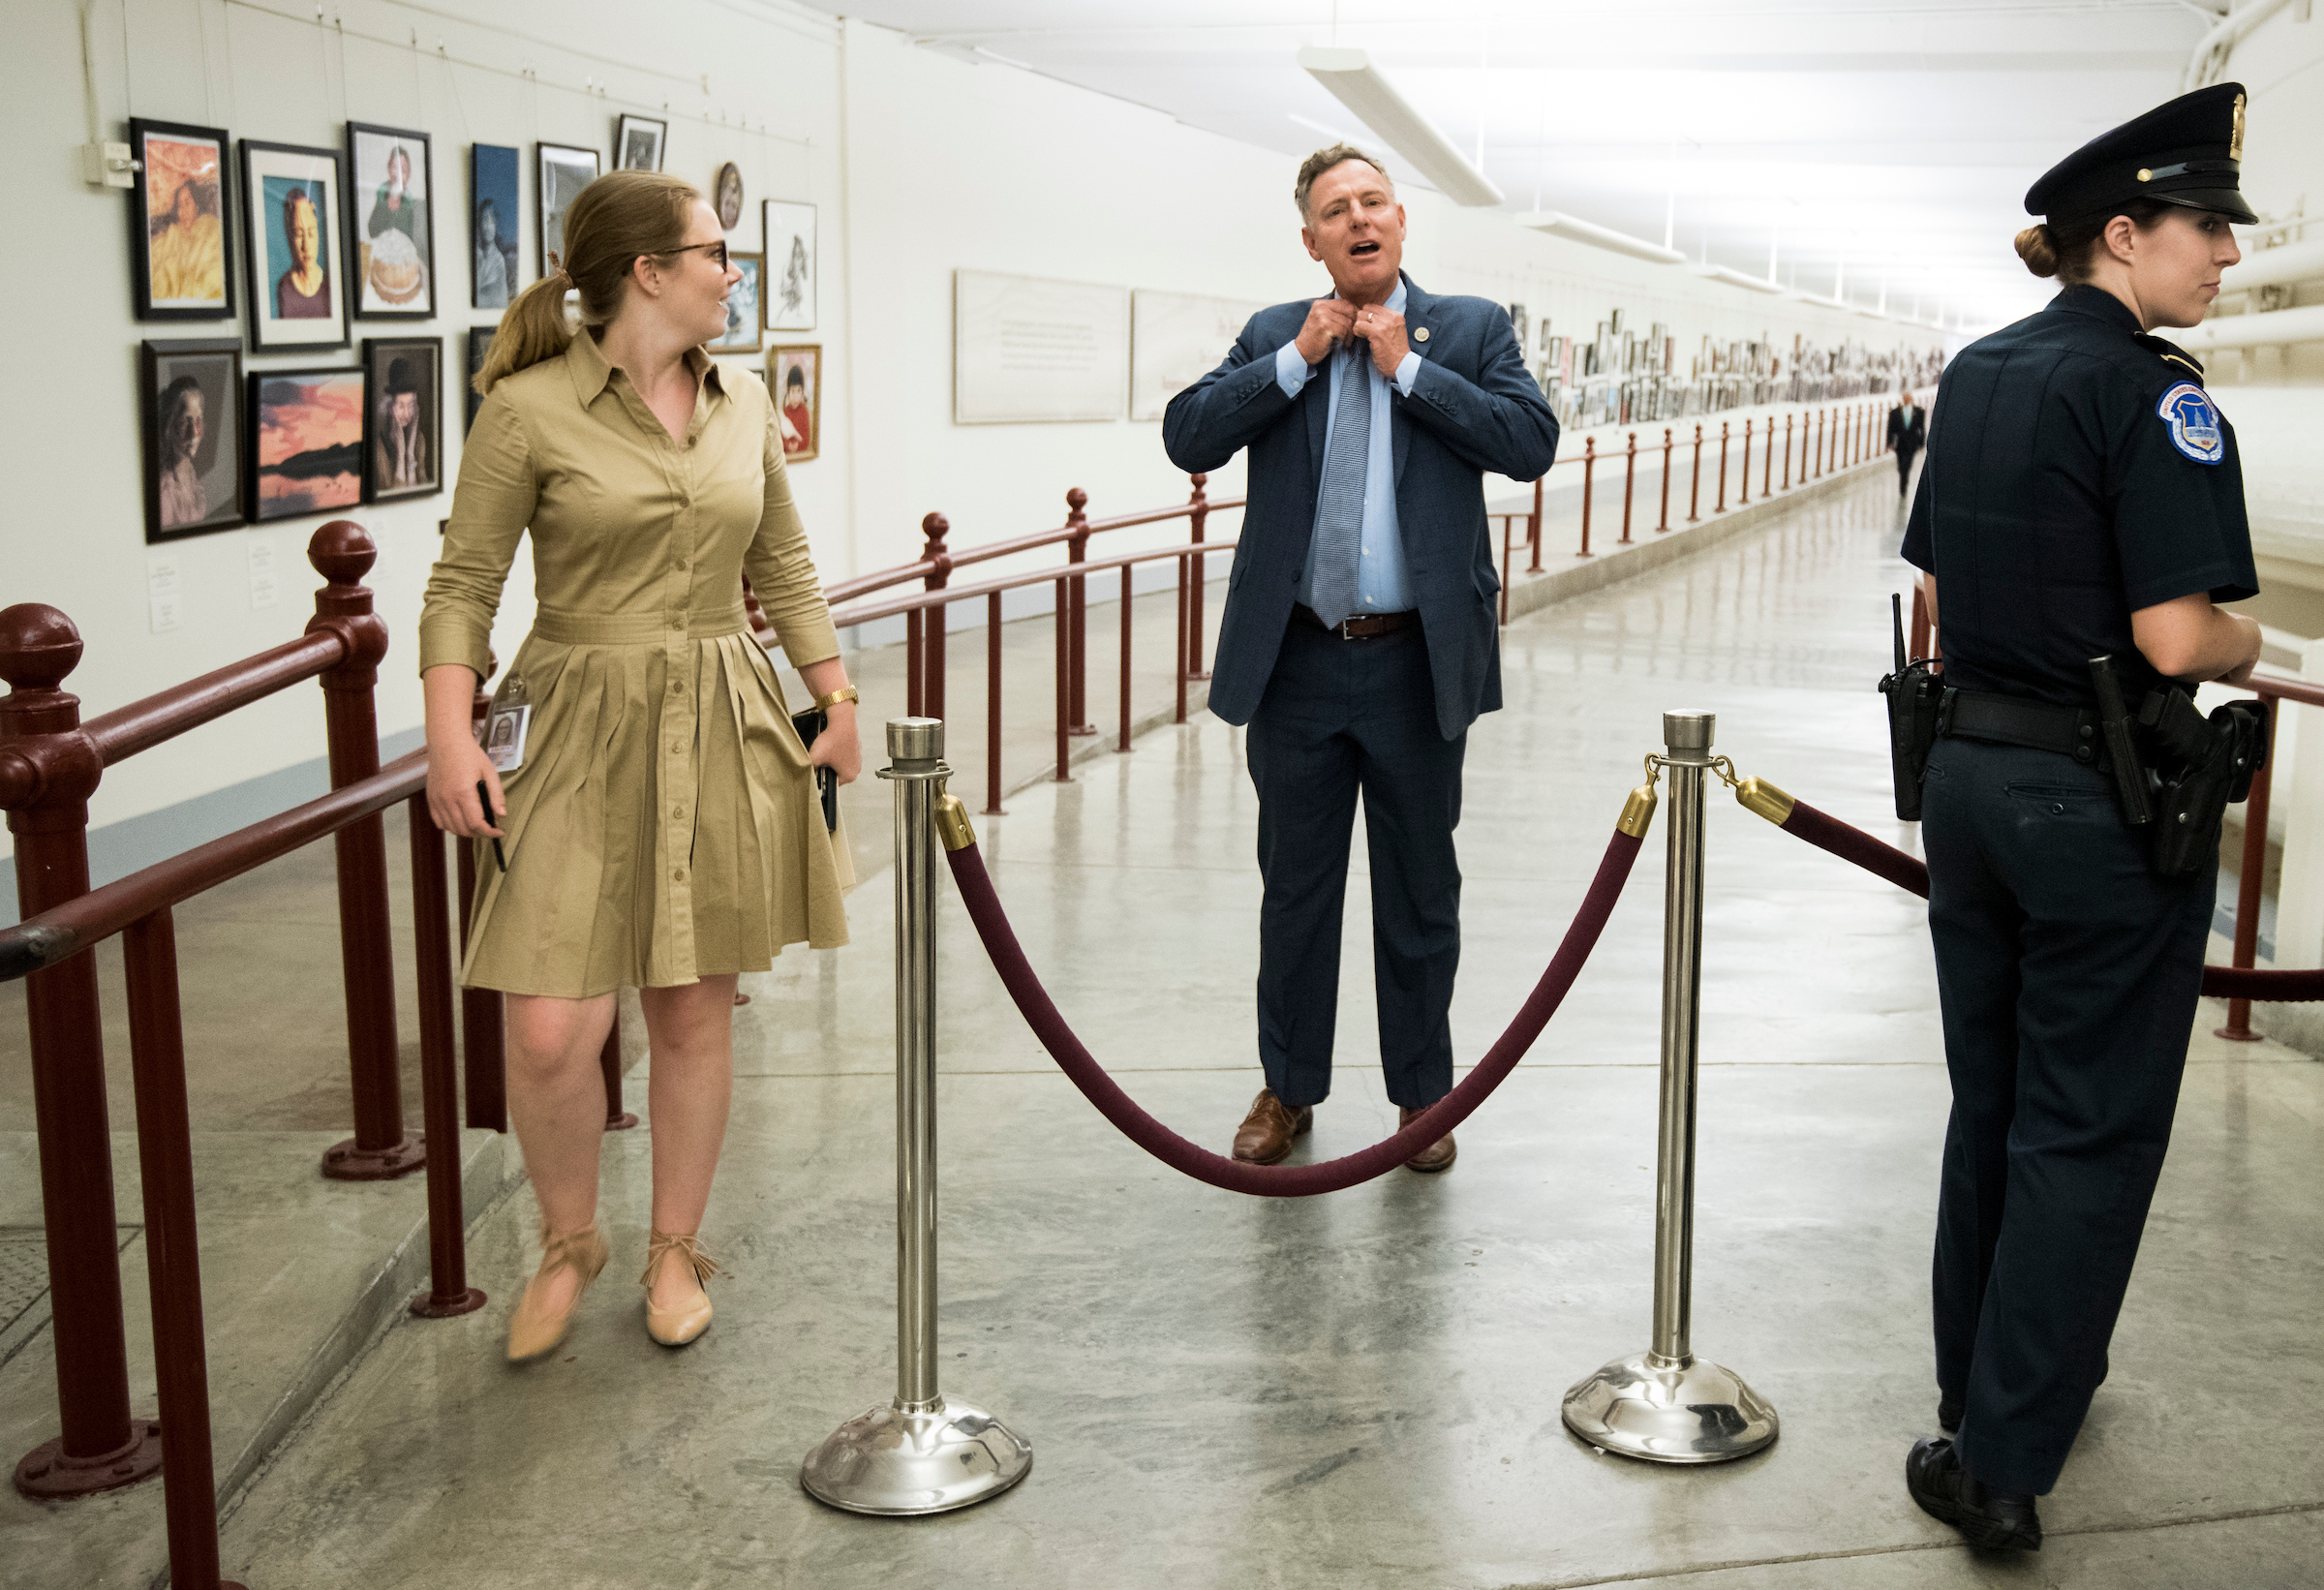 Rep. Scott Peters, D-Calif., fixes his tie as he emerges from the Cannon Tunnel after heavy rains caused Capitol Police to close the walkway due to flooding on Tuesday, July 17, 2018. Capitol Police closed the tunnel (Bill Clark/CQ Roll Call)